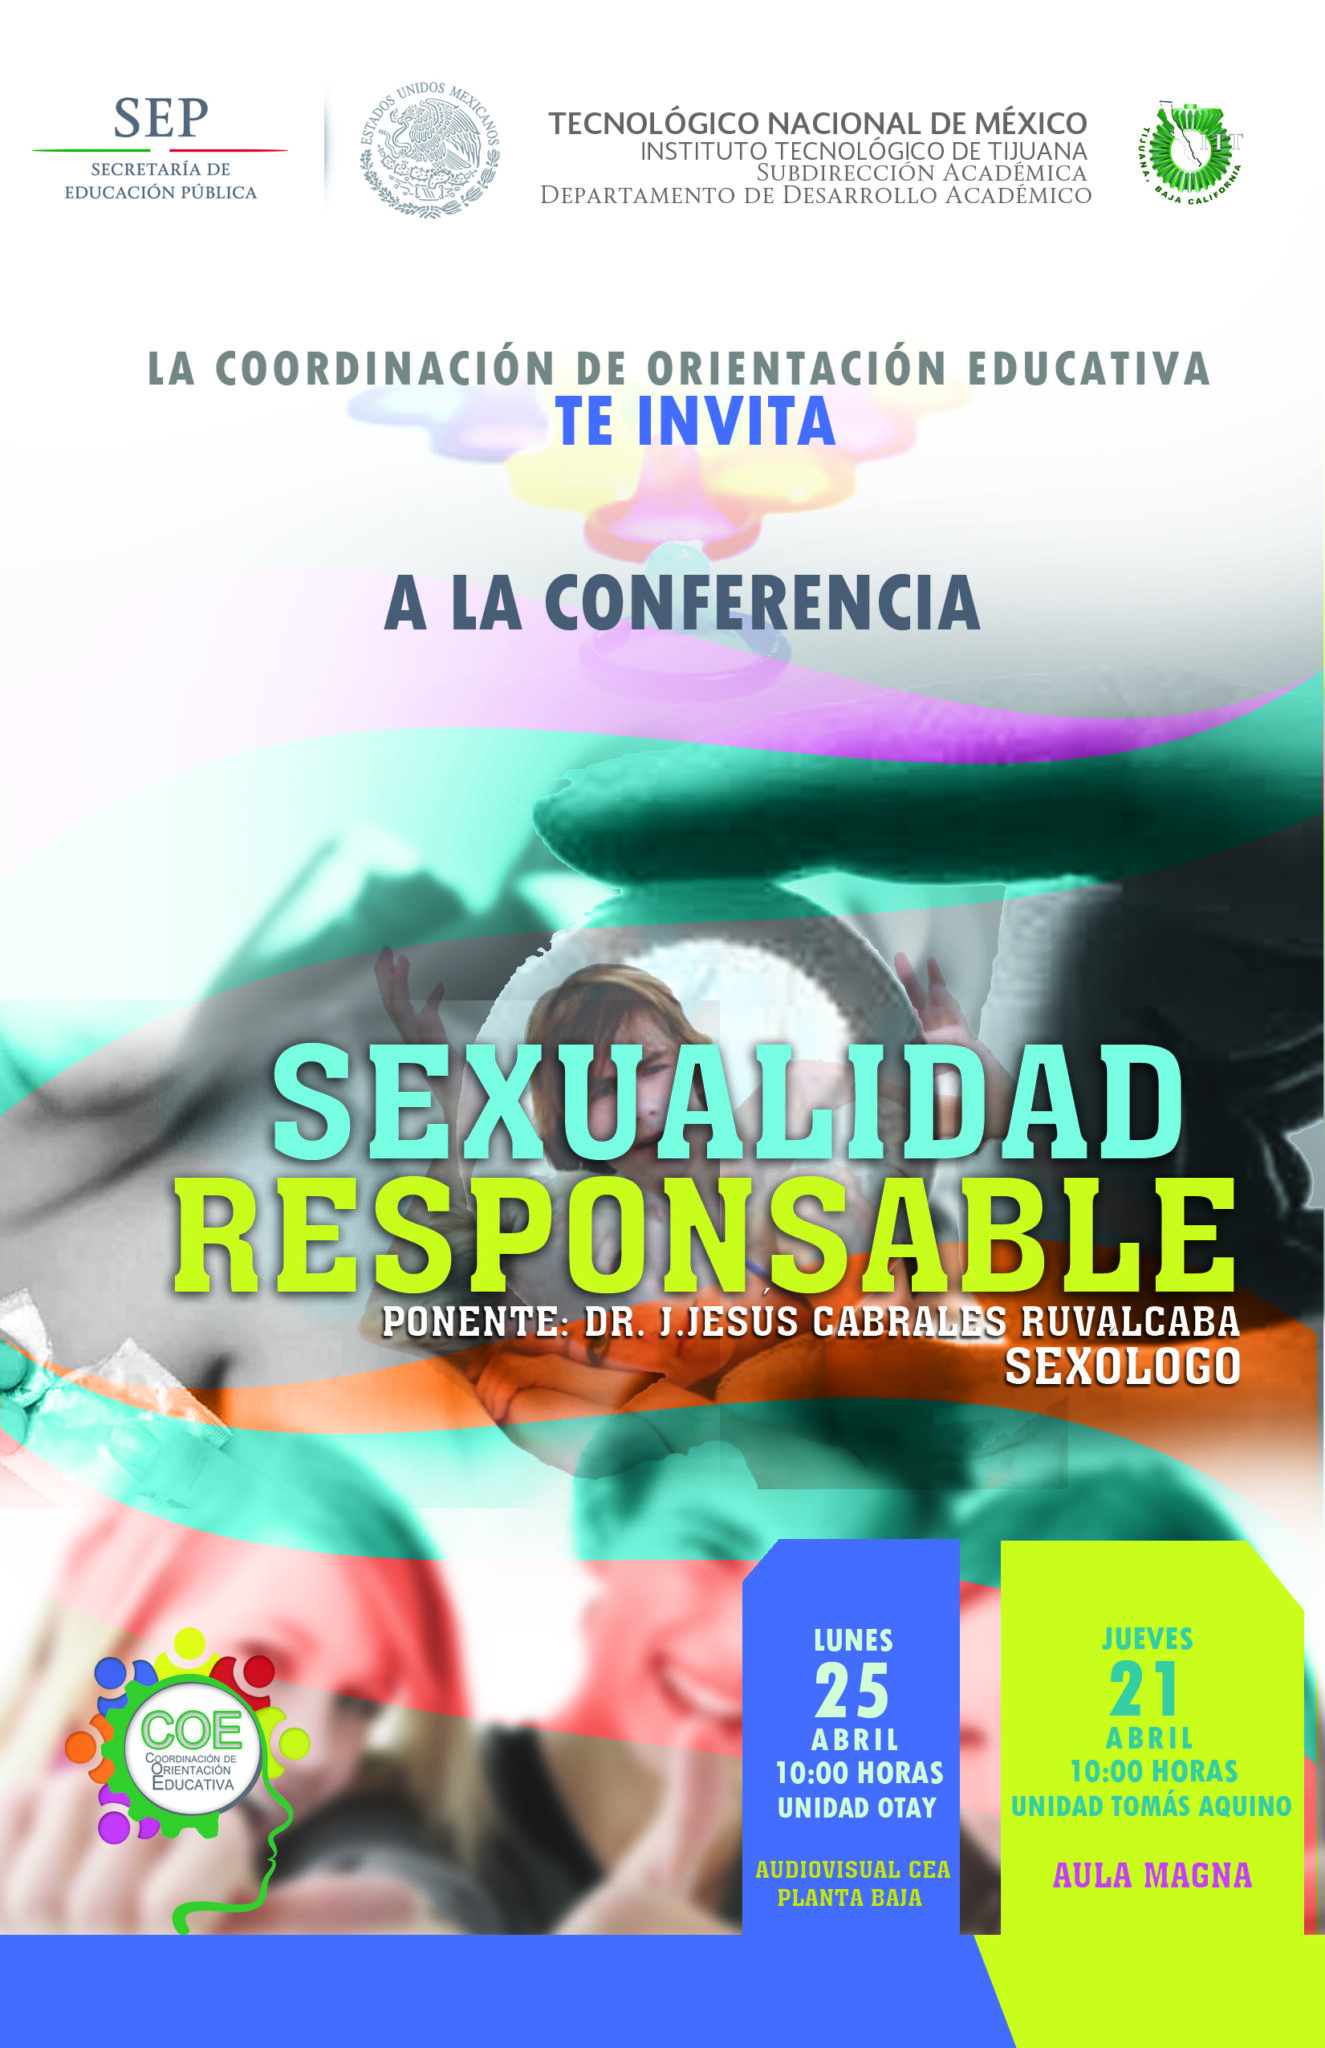 SEXUALIDAD RESPONSABLE POSTER 2016